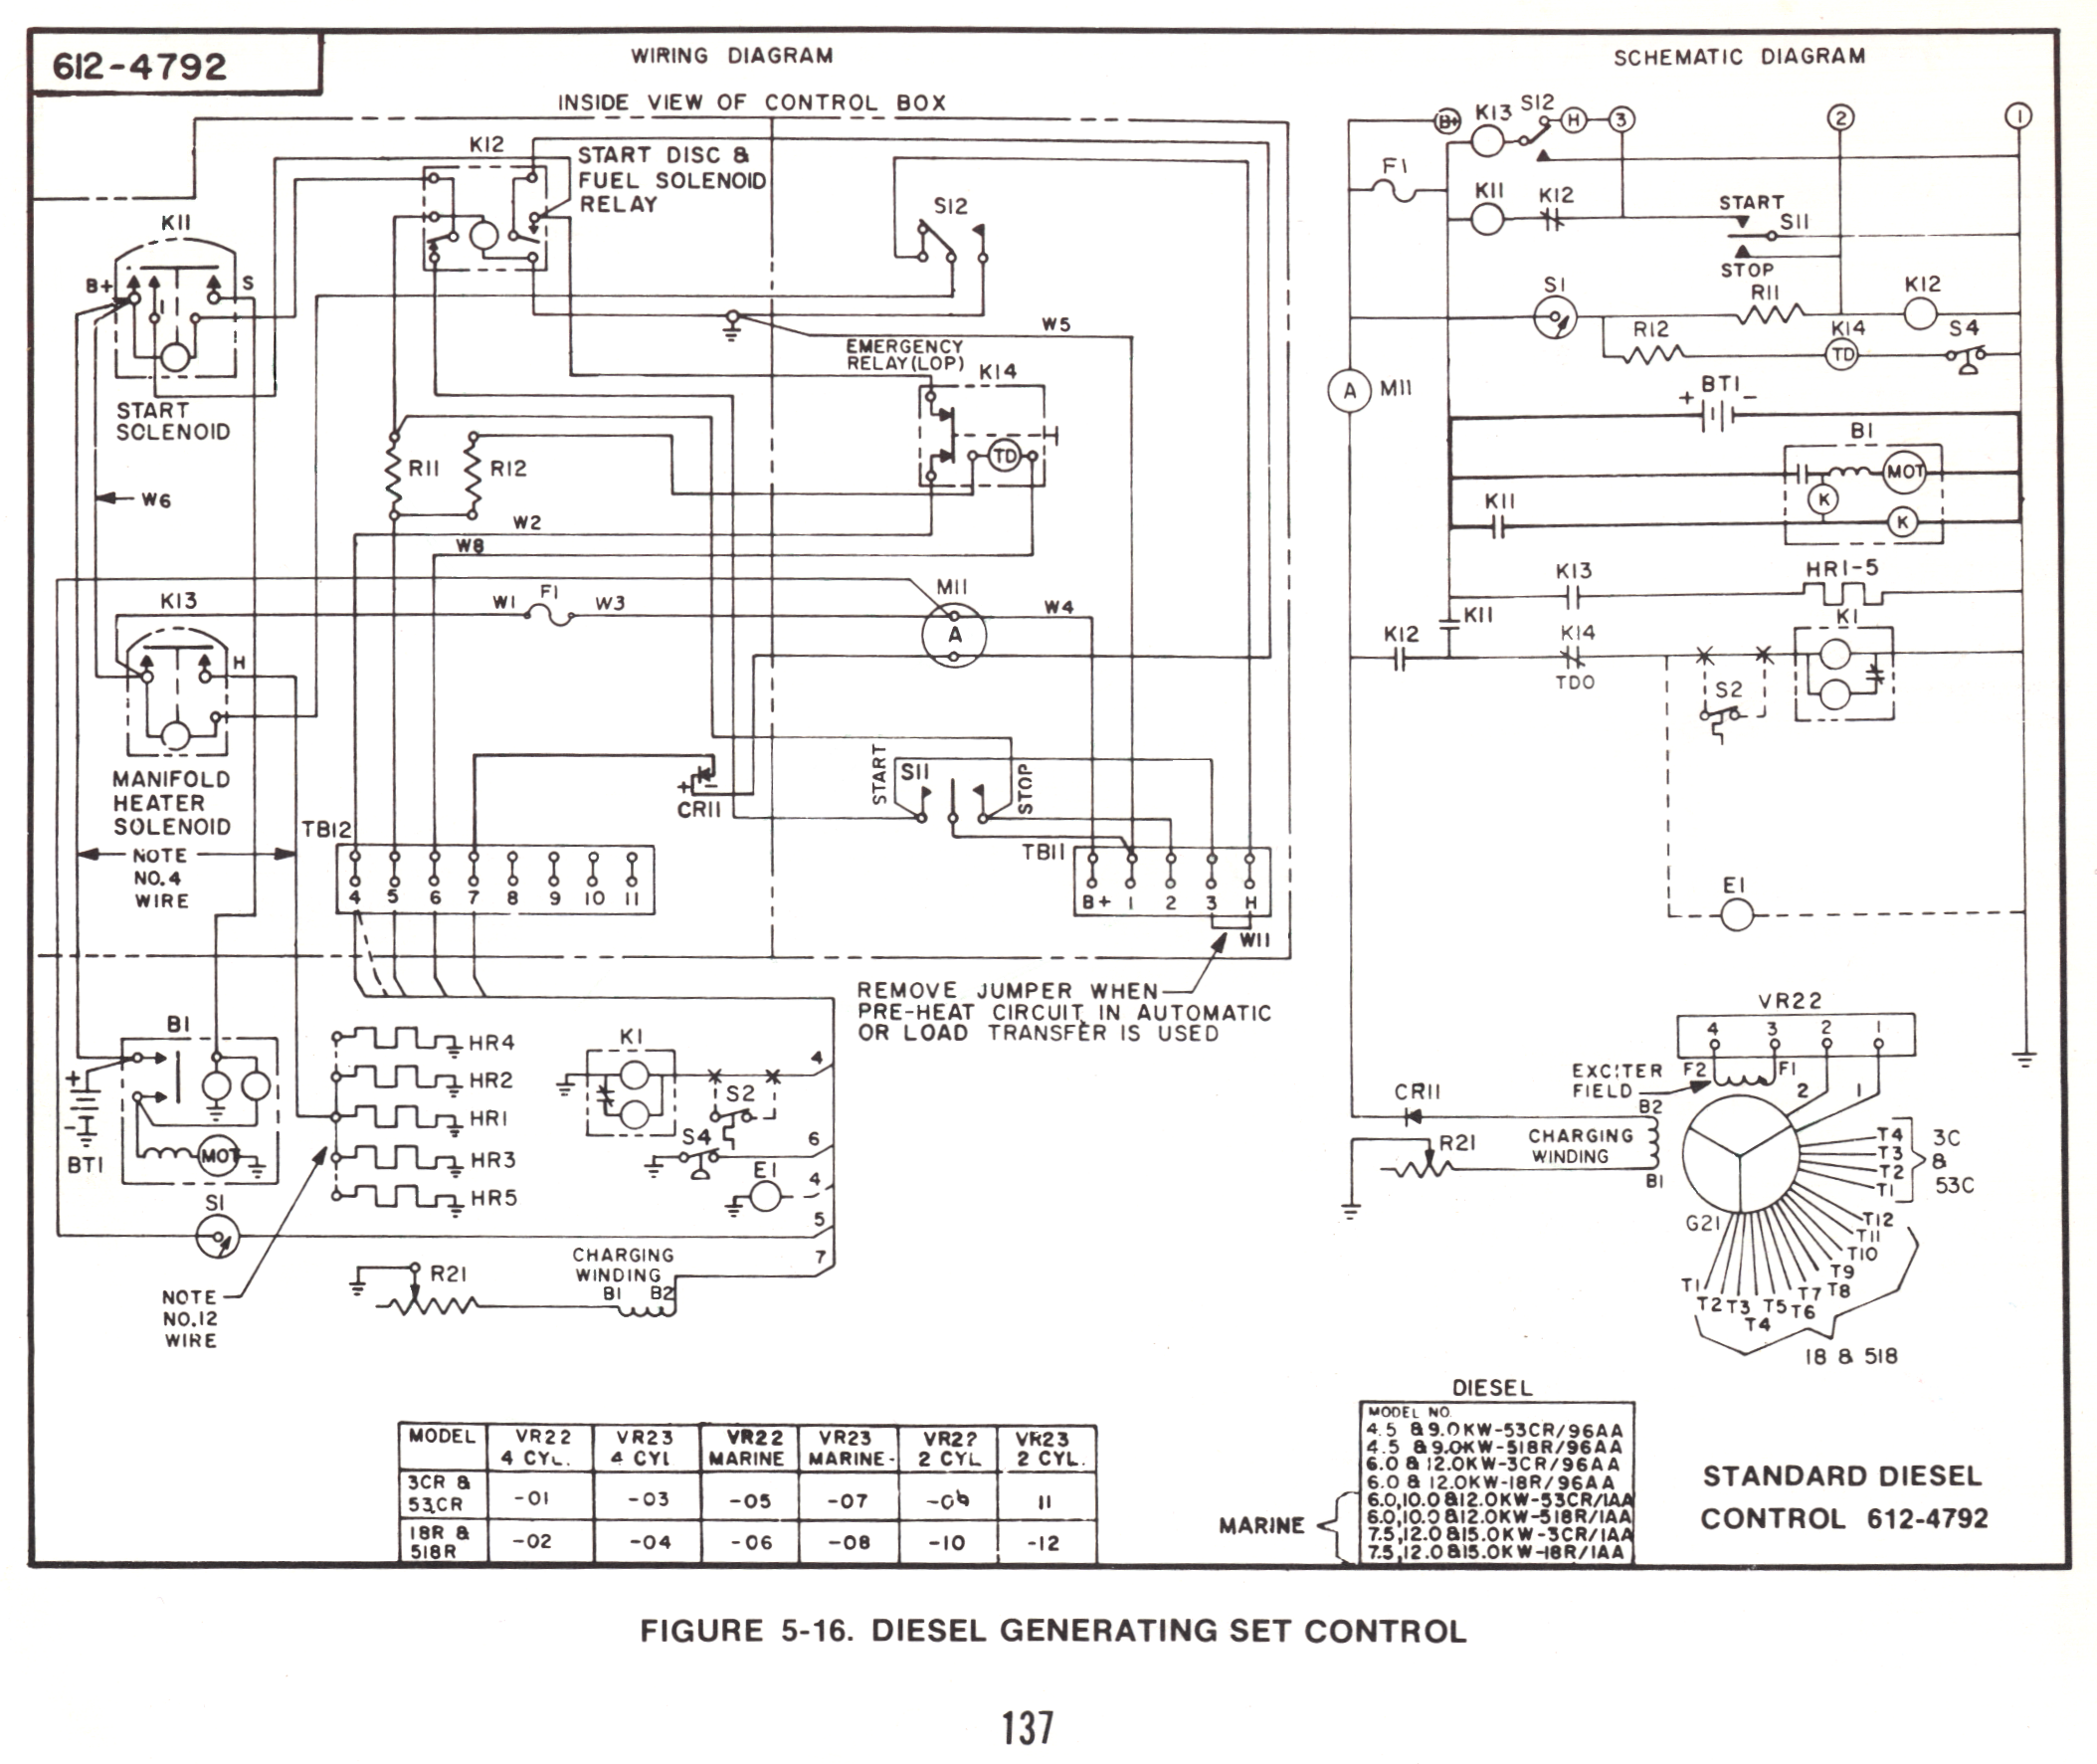 Onan_Diesel_Controls_612 4792_b onan stuff onan 5500 rv generator wiring diagram at creativeand.co